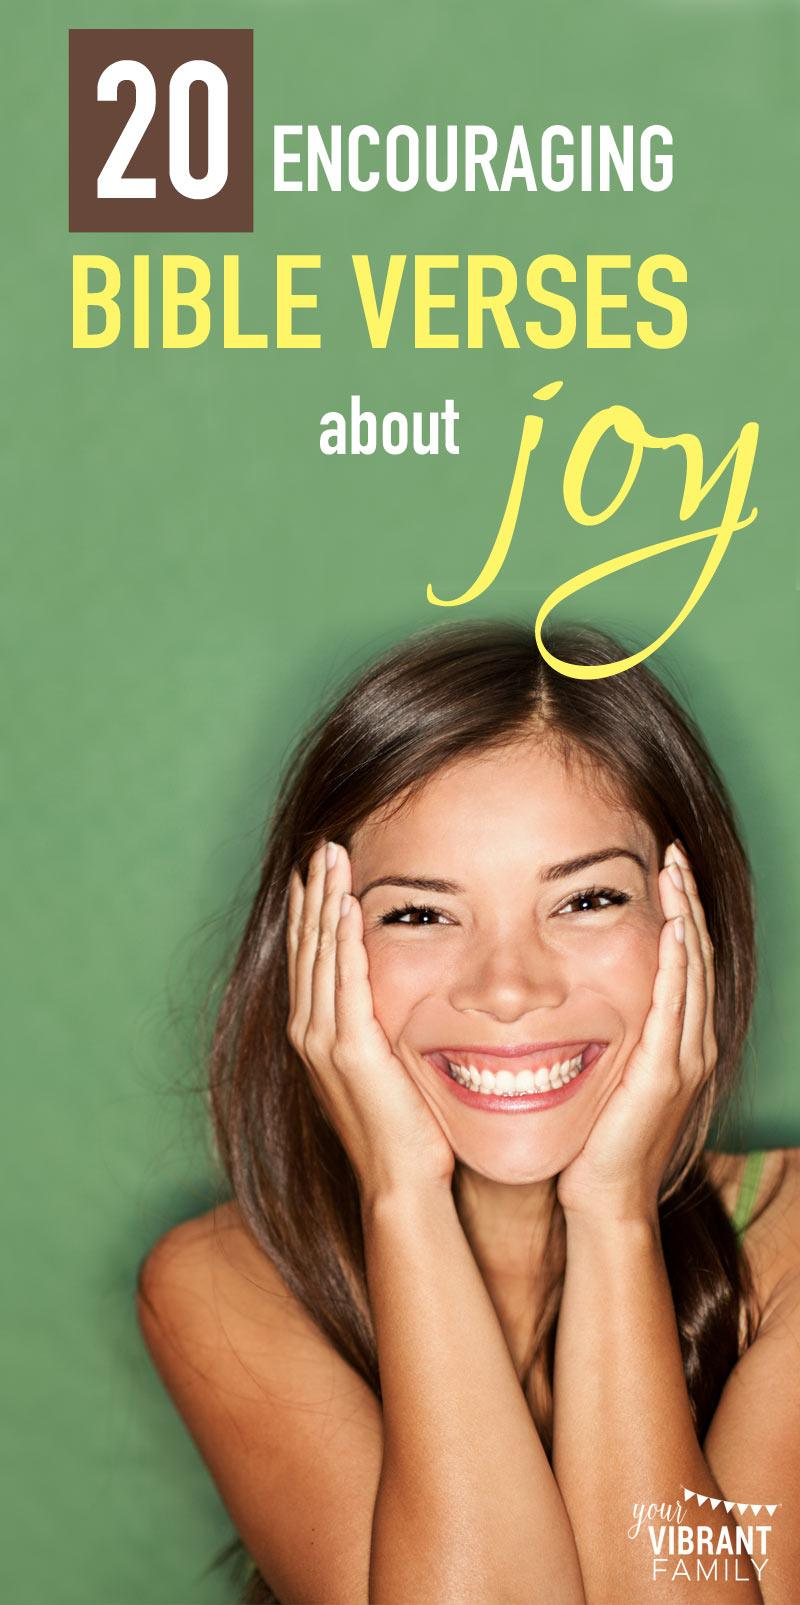 bible verses about happiness | happy bible verses | happiness bible verses | Bible verses about joy and happiness | bible verses for happiness | bible verses about being happy | bible verses about joy | scriptures on joy | joy bible verses | joy in the bible | scripture on joy |bible joy bible verse about joy | scripture about joy | bible joy | joy scriptures | verses about joy | bible verses on joy | verses on joy